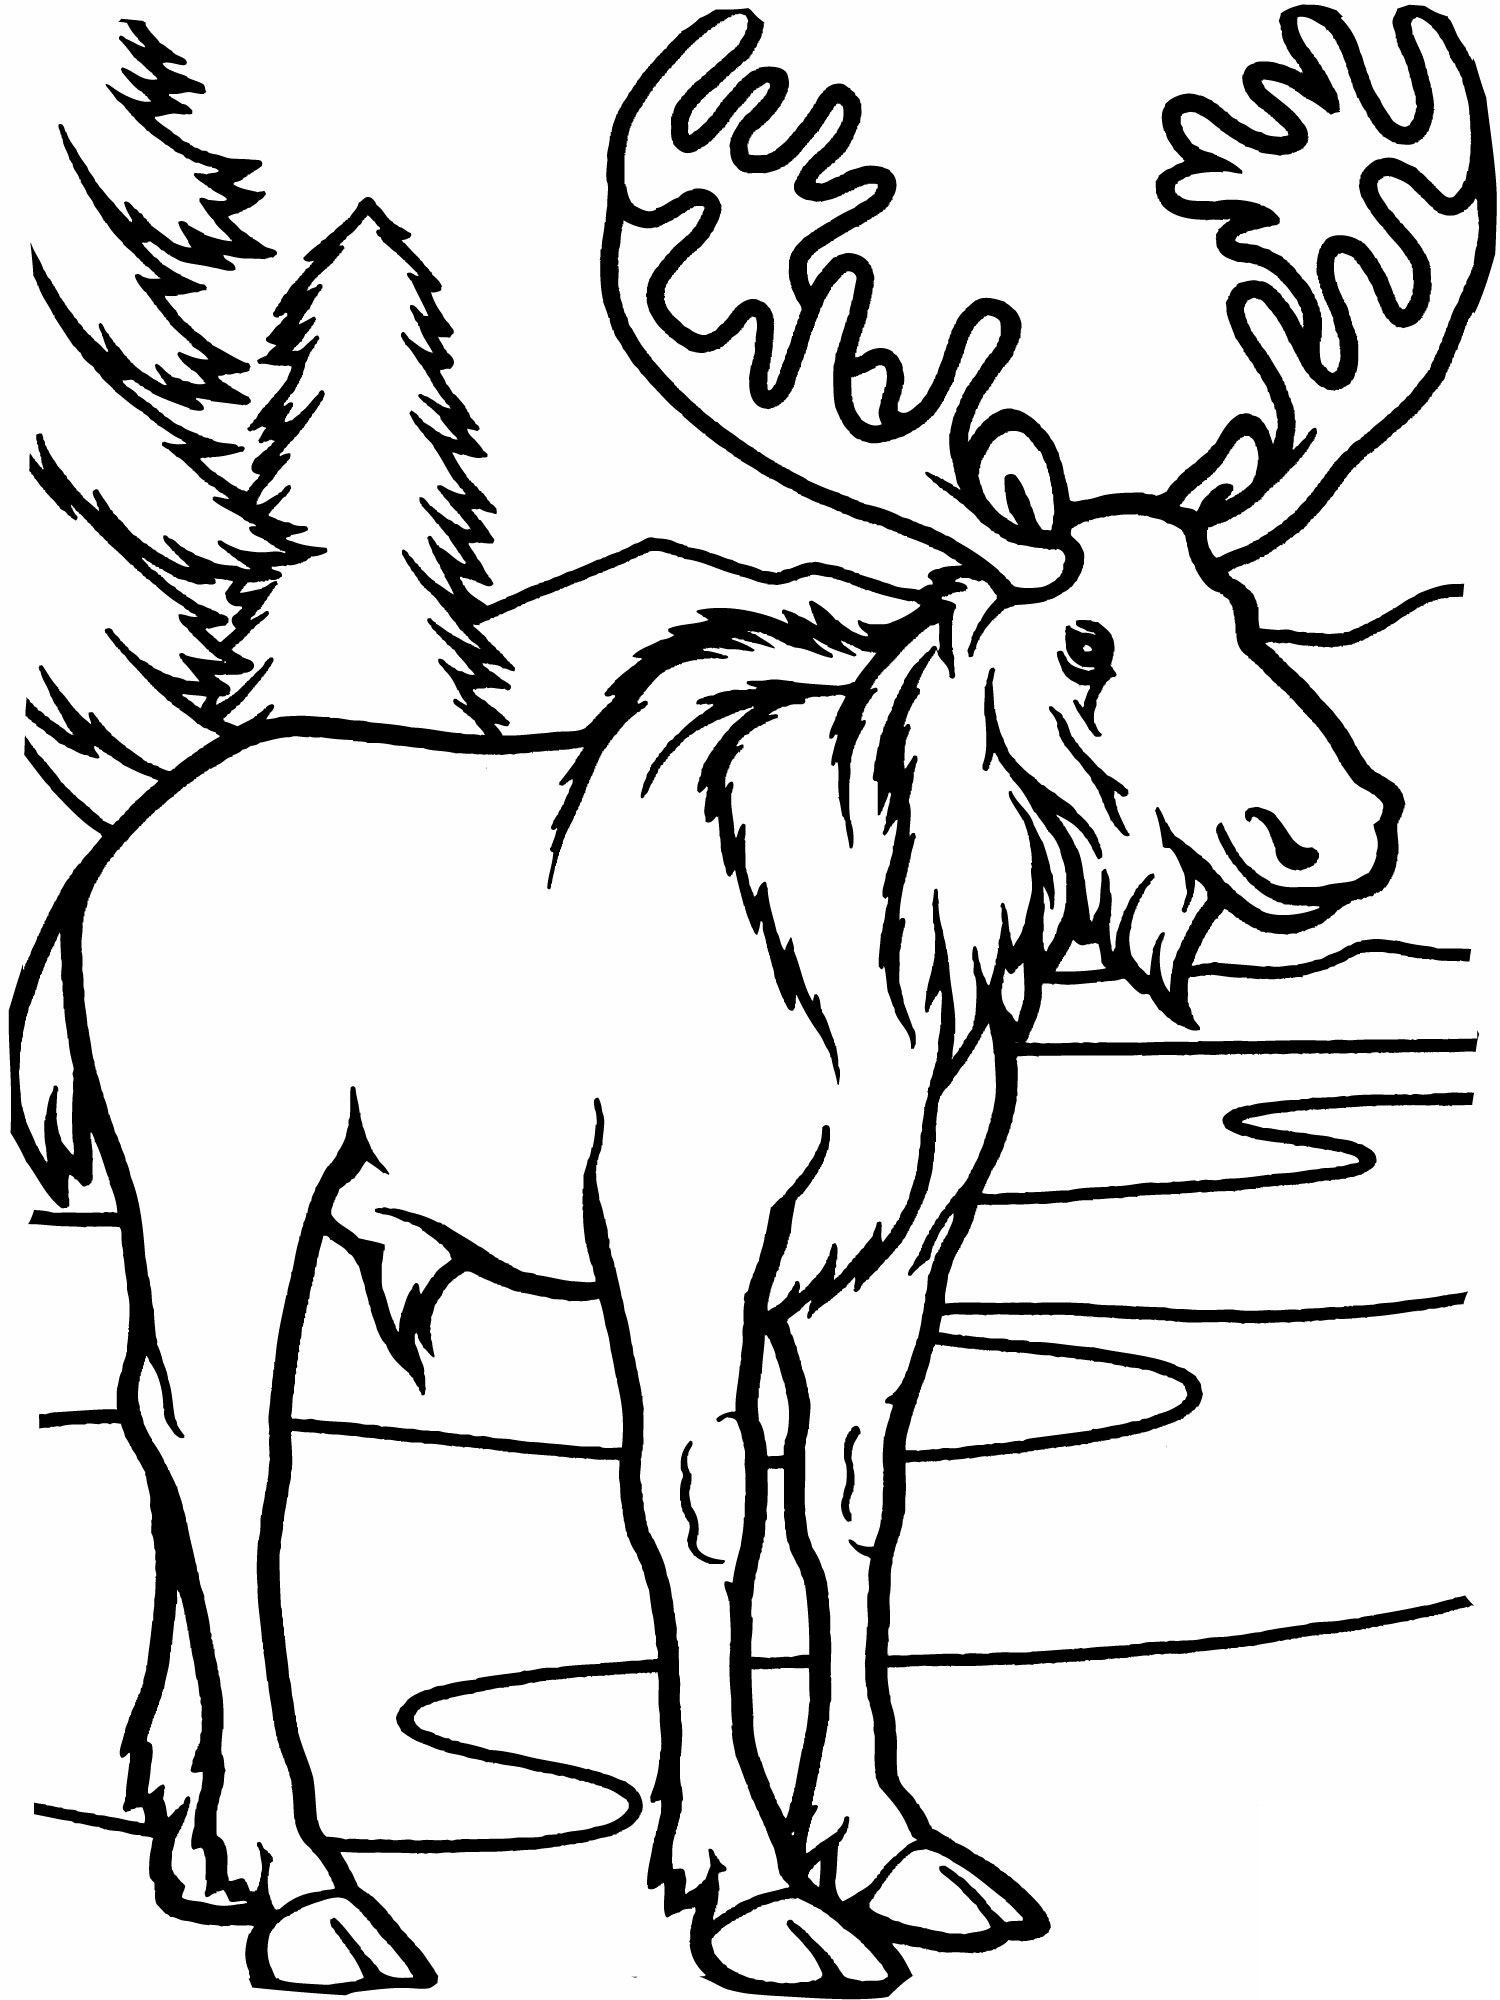 moose coloring pages moose coloring pages to download and print for free pages coloring moose